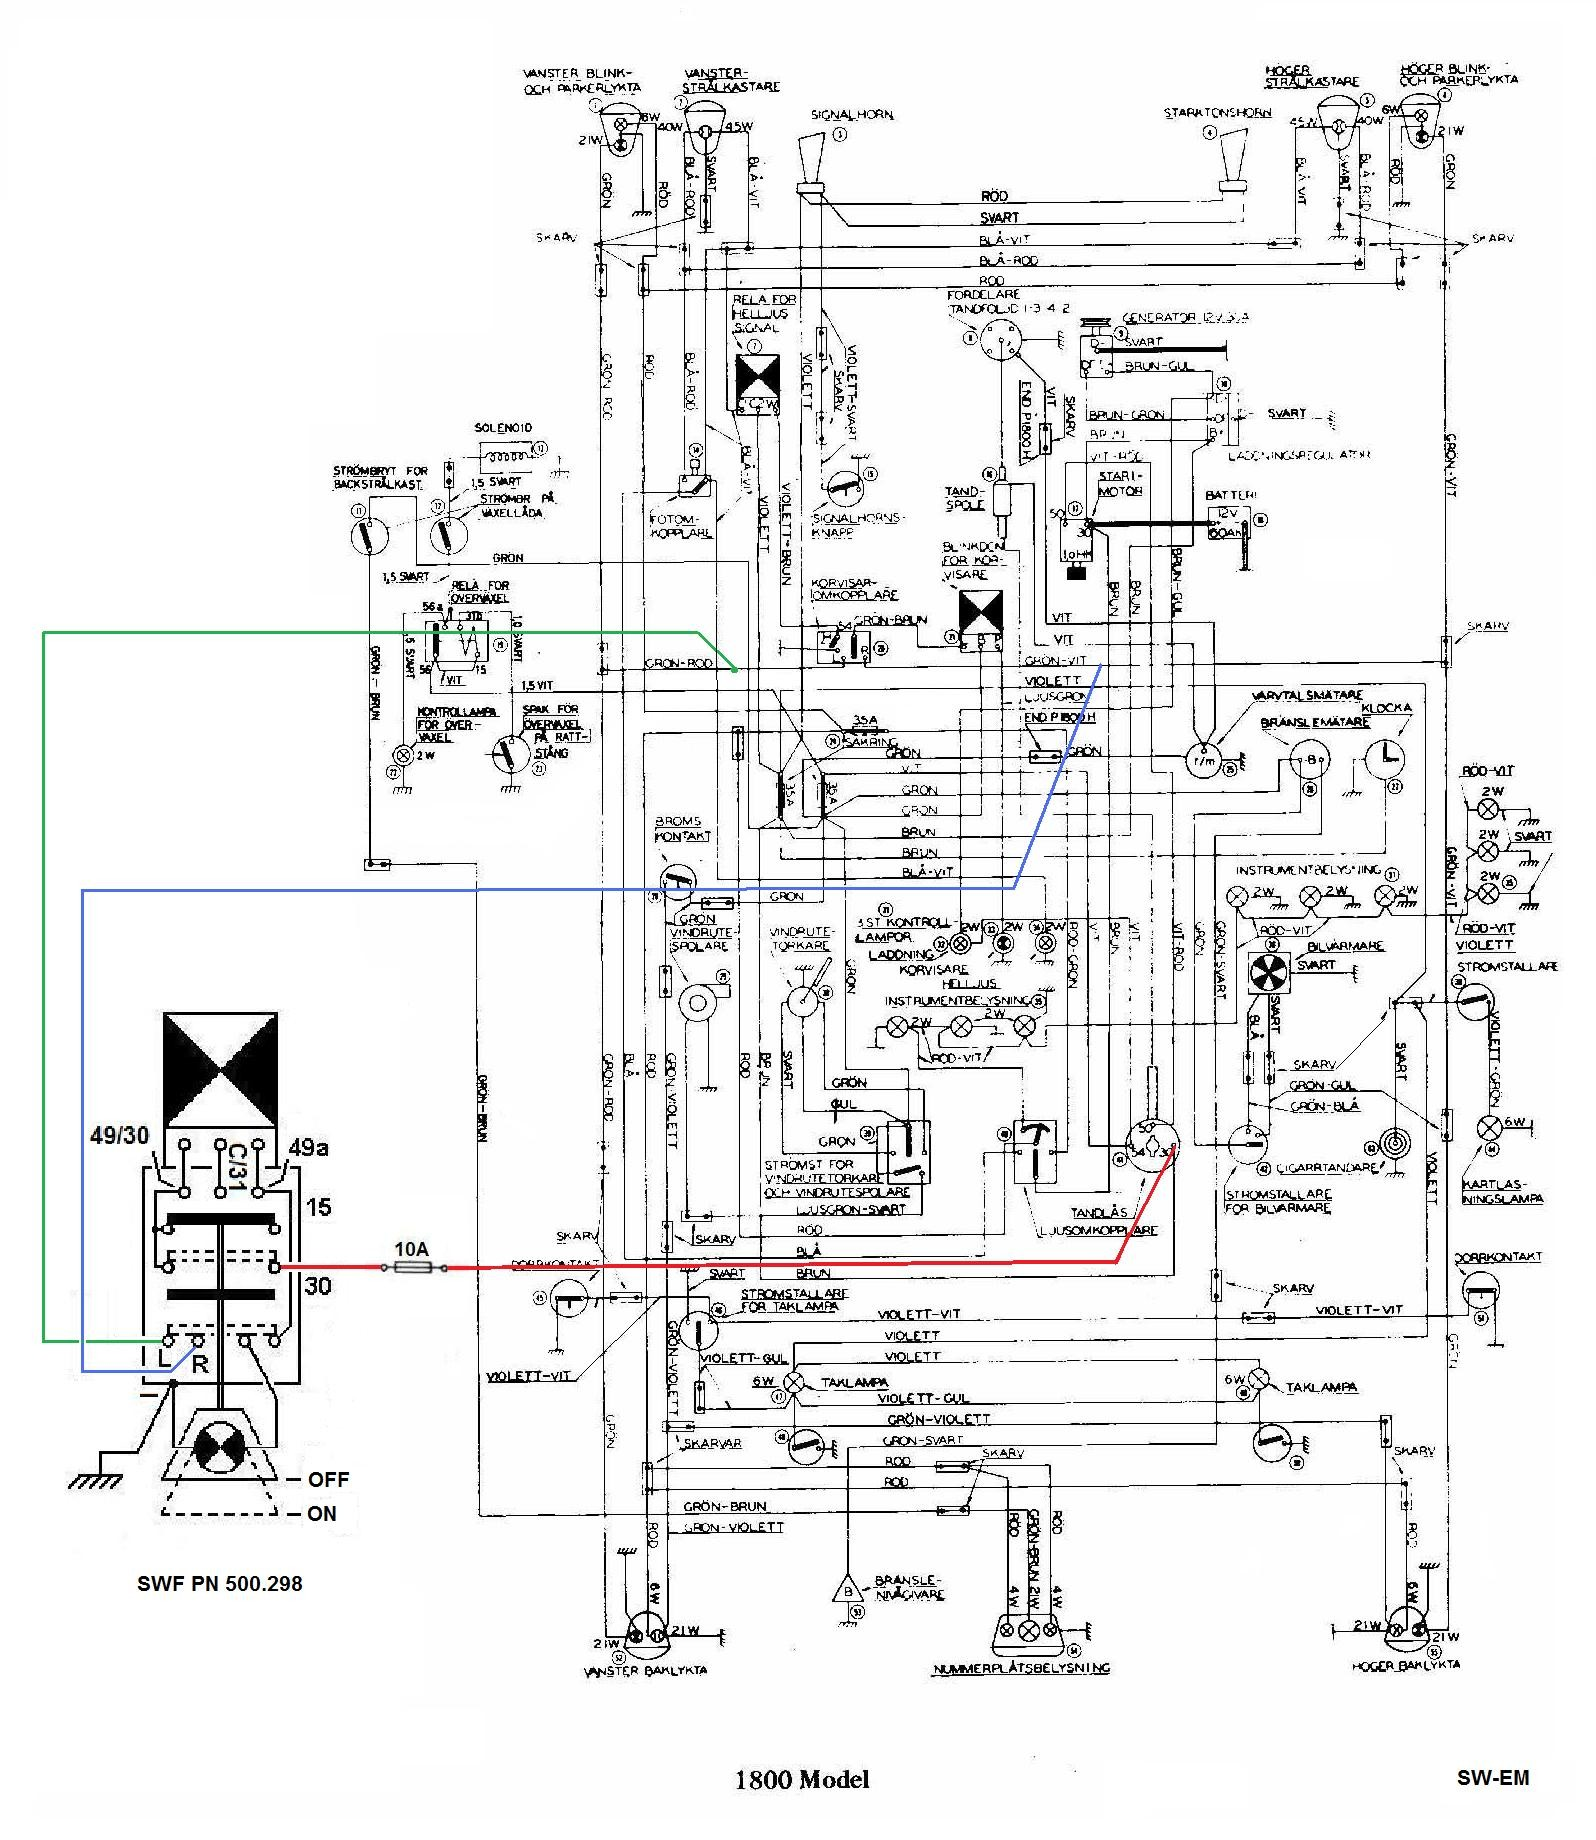 Wiring Diagram for 3 Prong Flasher Sw Em Emergency Flasher Of Wiring Diagram for 3 Prong Flasher